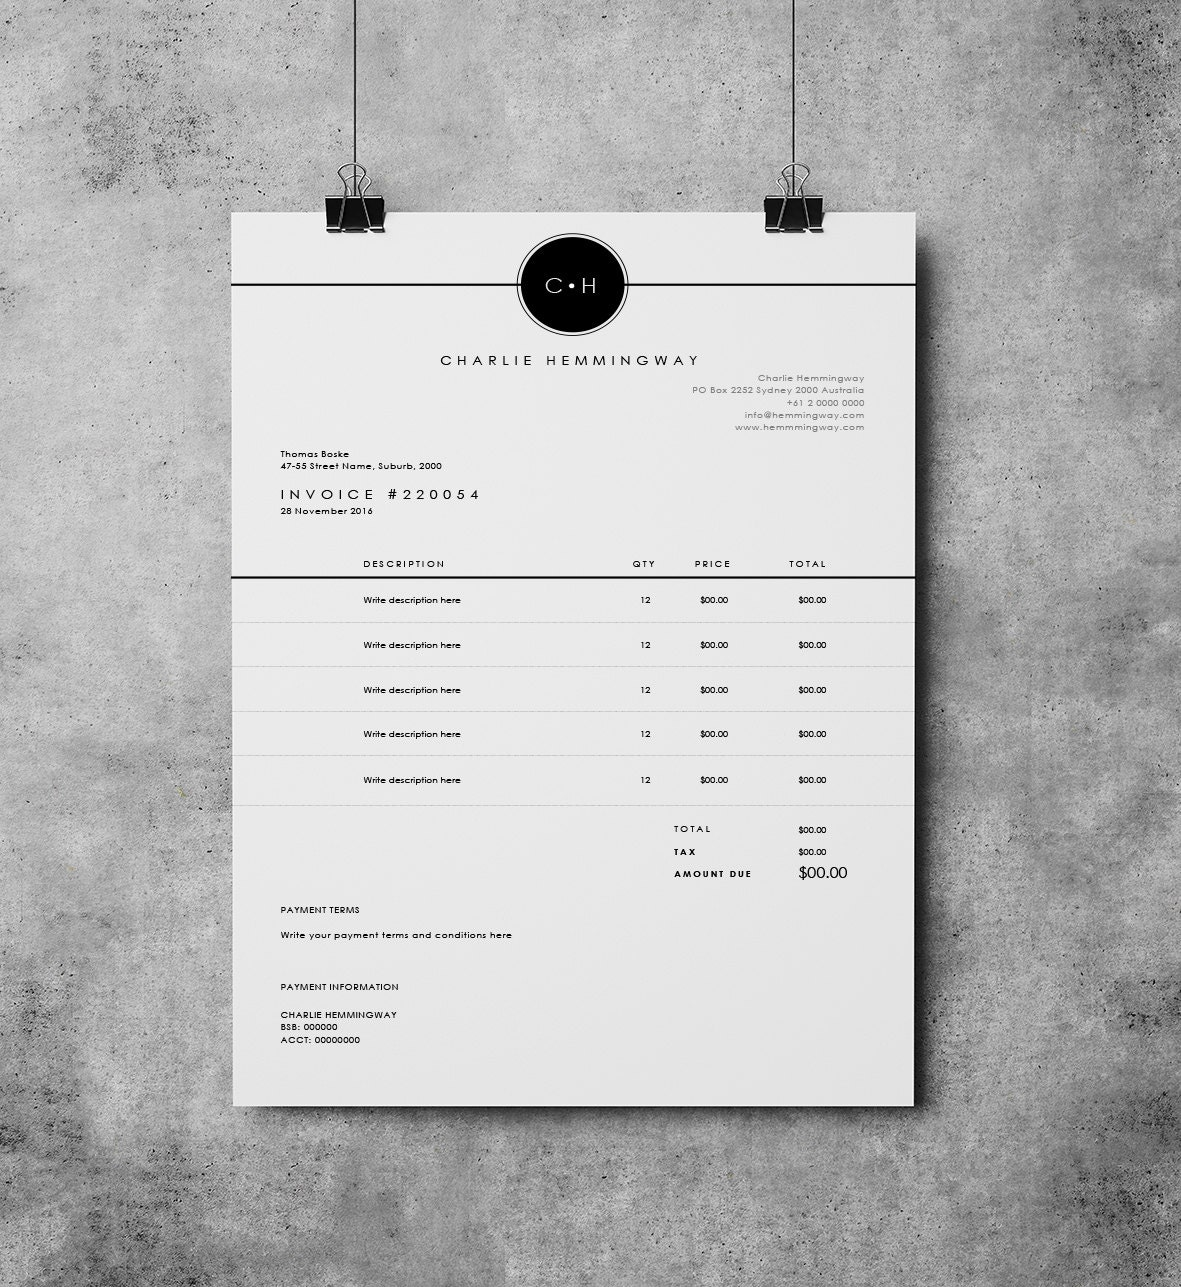 Invoice Template Invoice Design Receipt MS Word Invoice - Free invoices online printable women clothing stores online